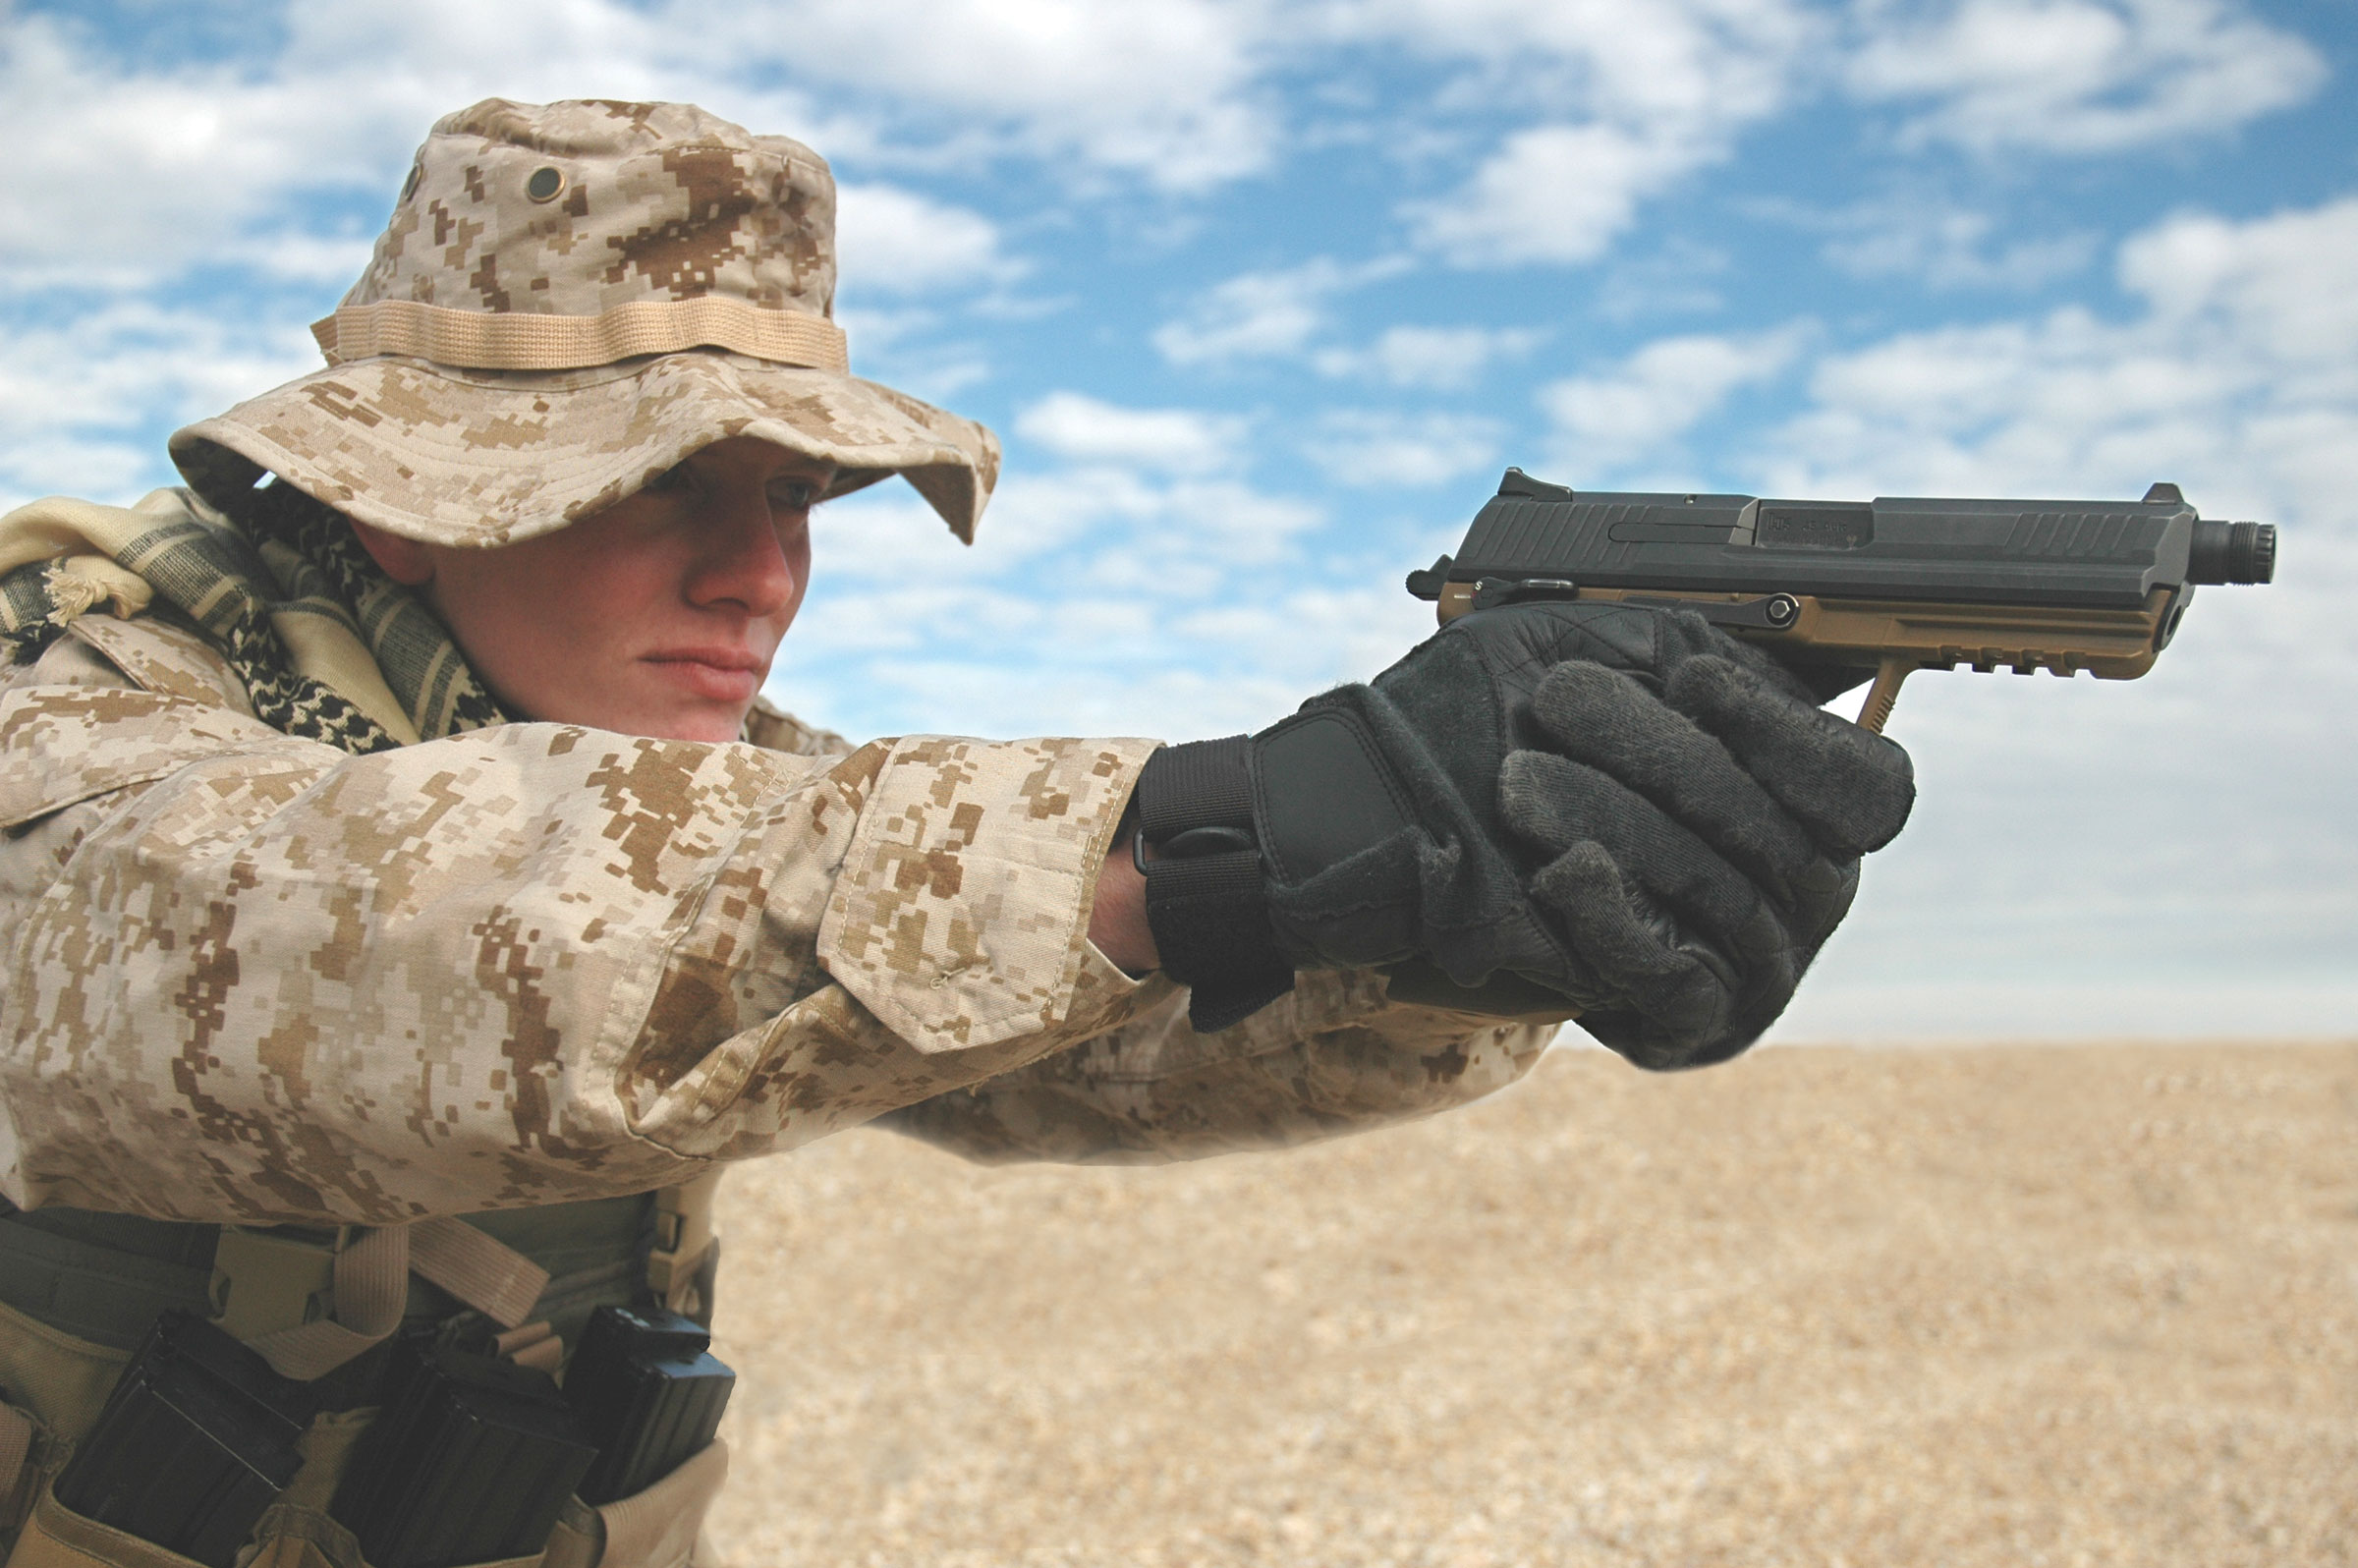 HK45 Marine <!  :en  >High Capacity Tactical Plastic .45 ACP Pistols: Choices, Choices...<!  :  >